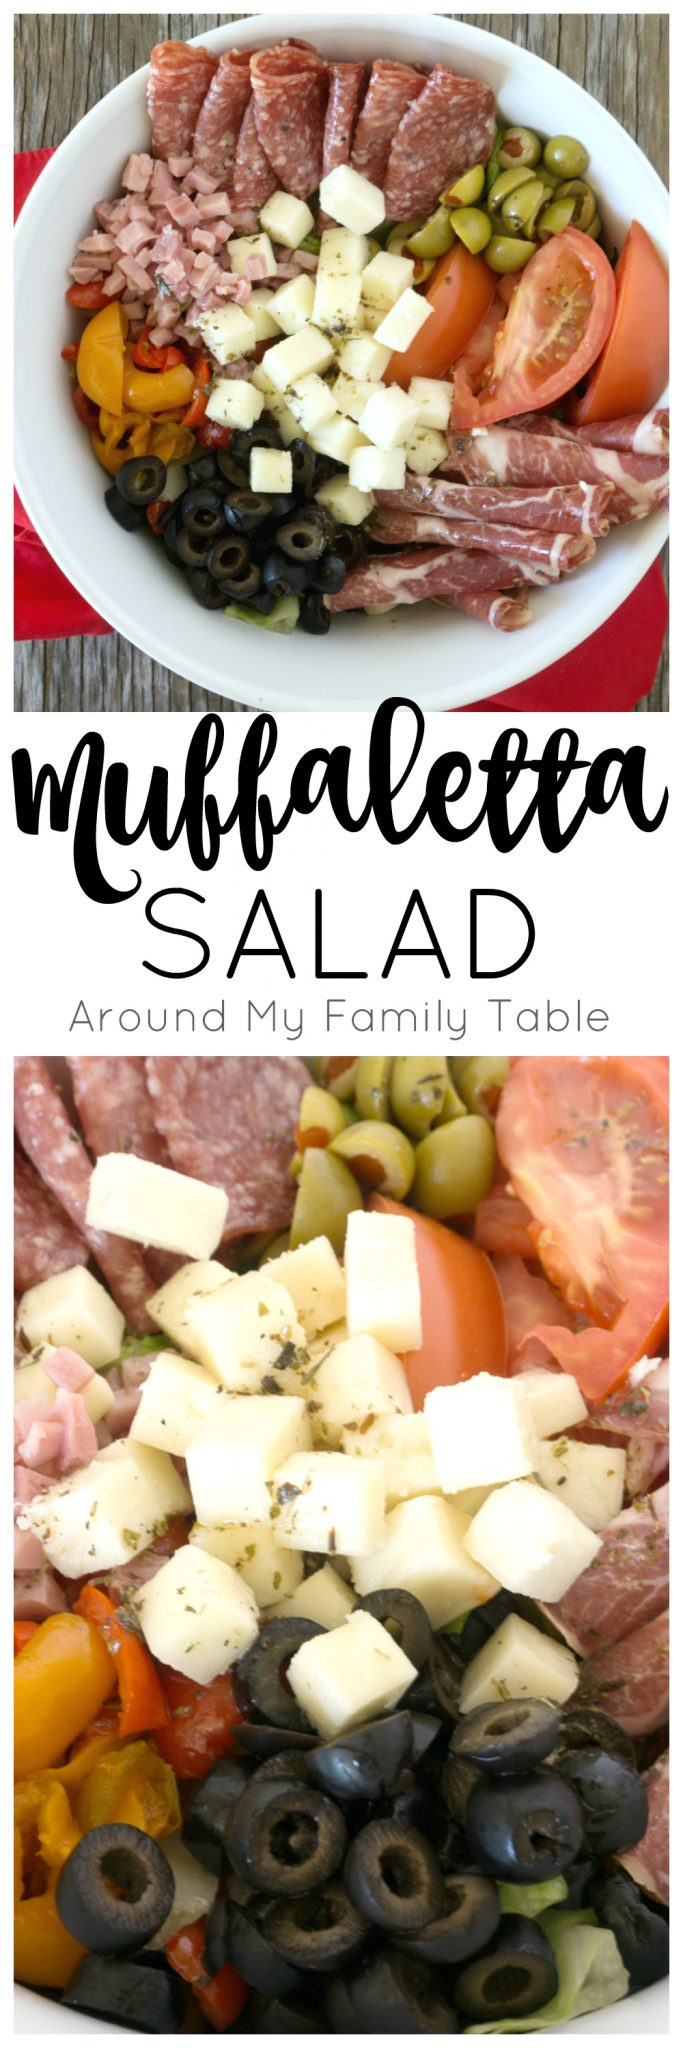 There is nothing better for supper on a hot evening than a delicious salad. This Muffaletta Salad has all the flavors you expect in the traditional sandwich, but in salad form!